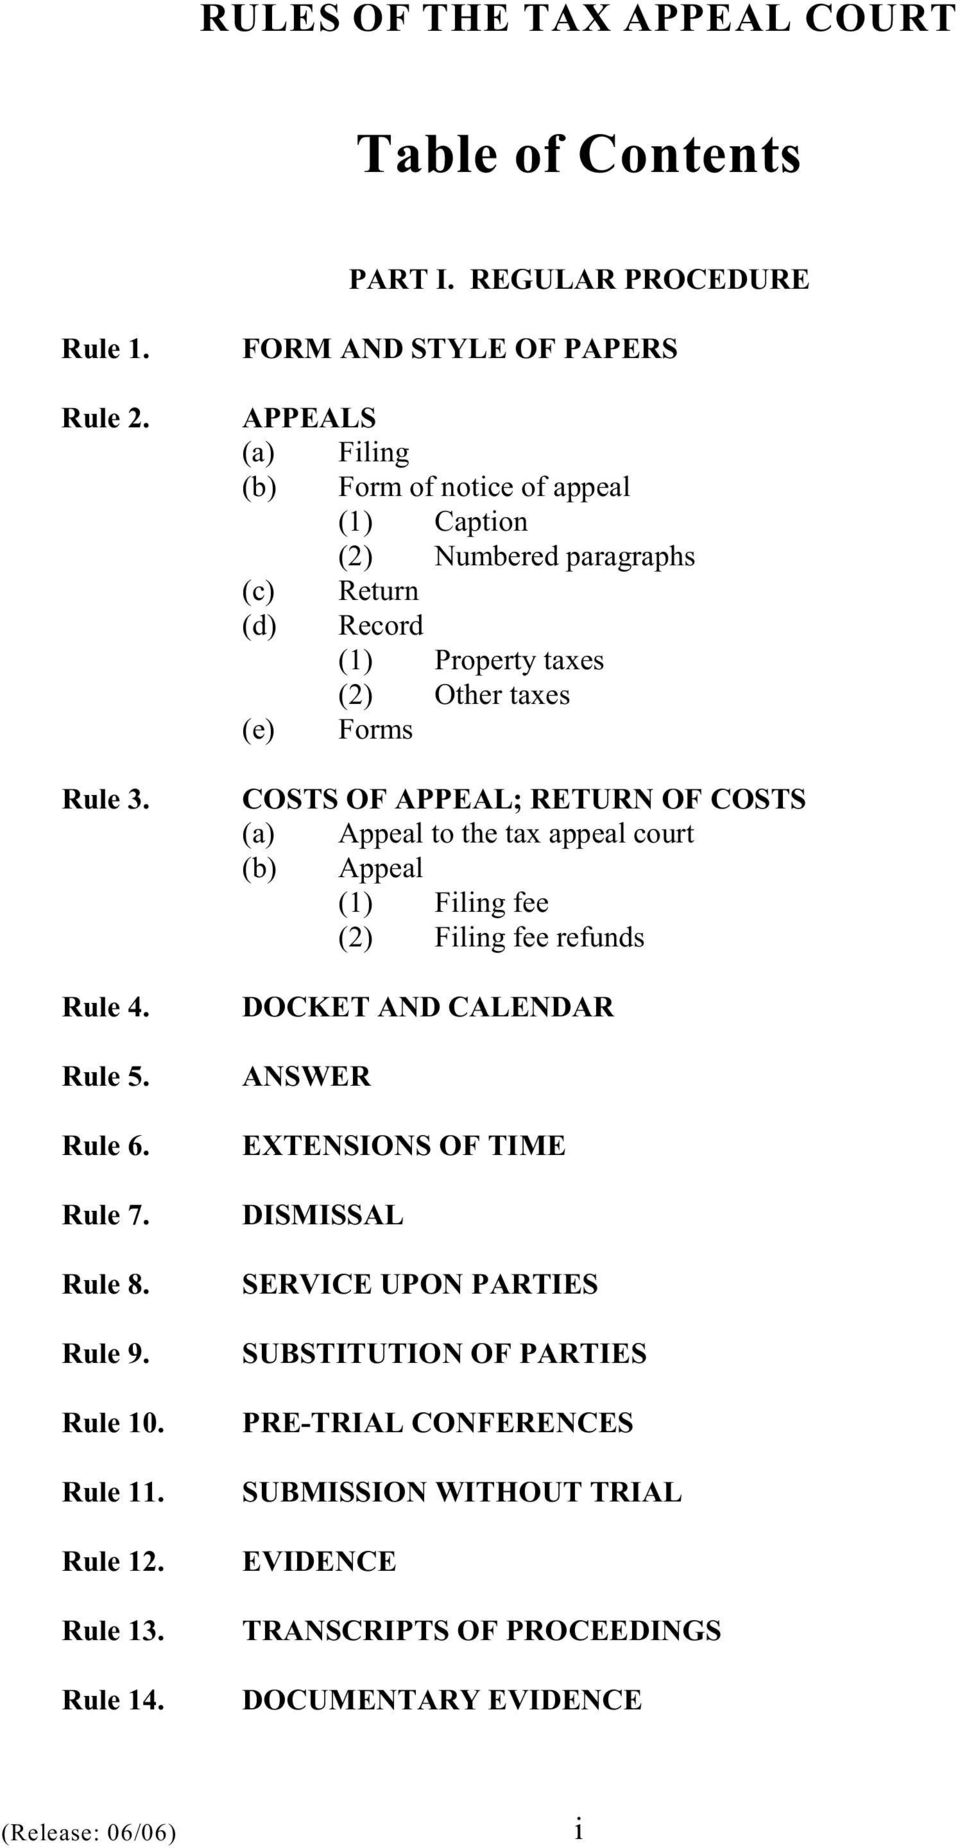 FORM AND STYLE OF PAPERS APPEALS (a) Filing (b) Form of notice of appeal (1) Caption (2) Numbered paragraphs (c) Return (d) Record (1) Property taxes (2) Other taxes (e) Forms